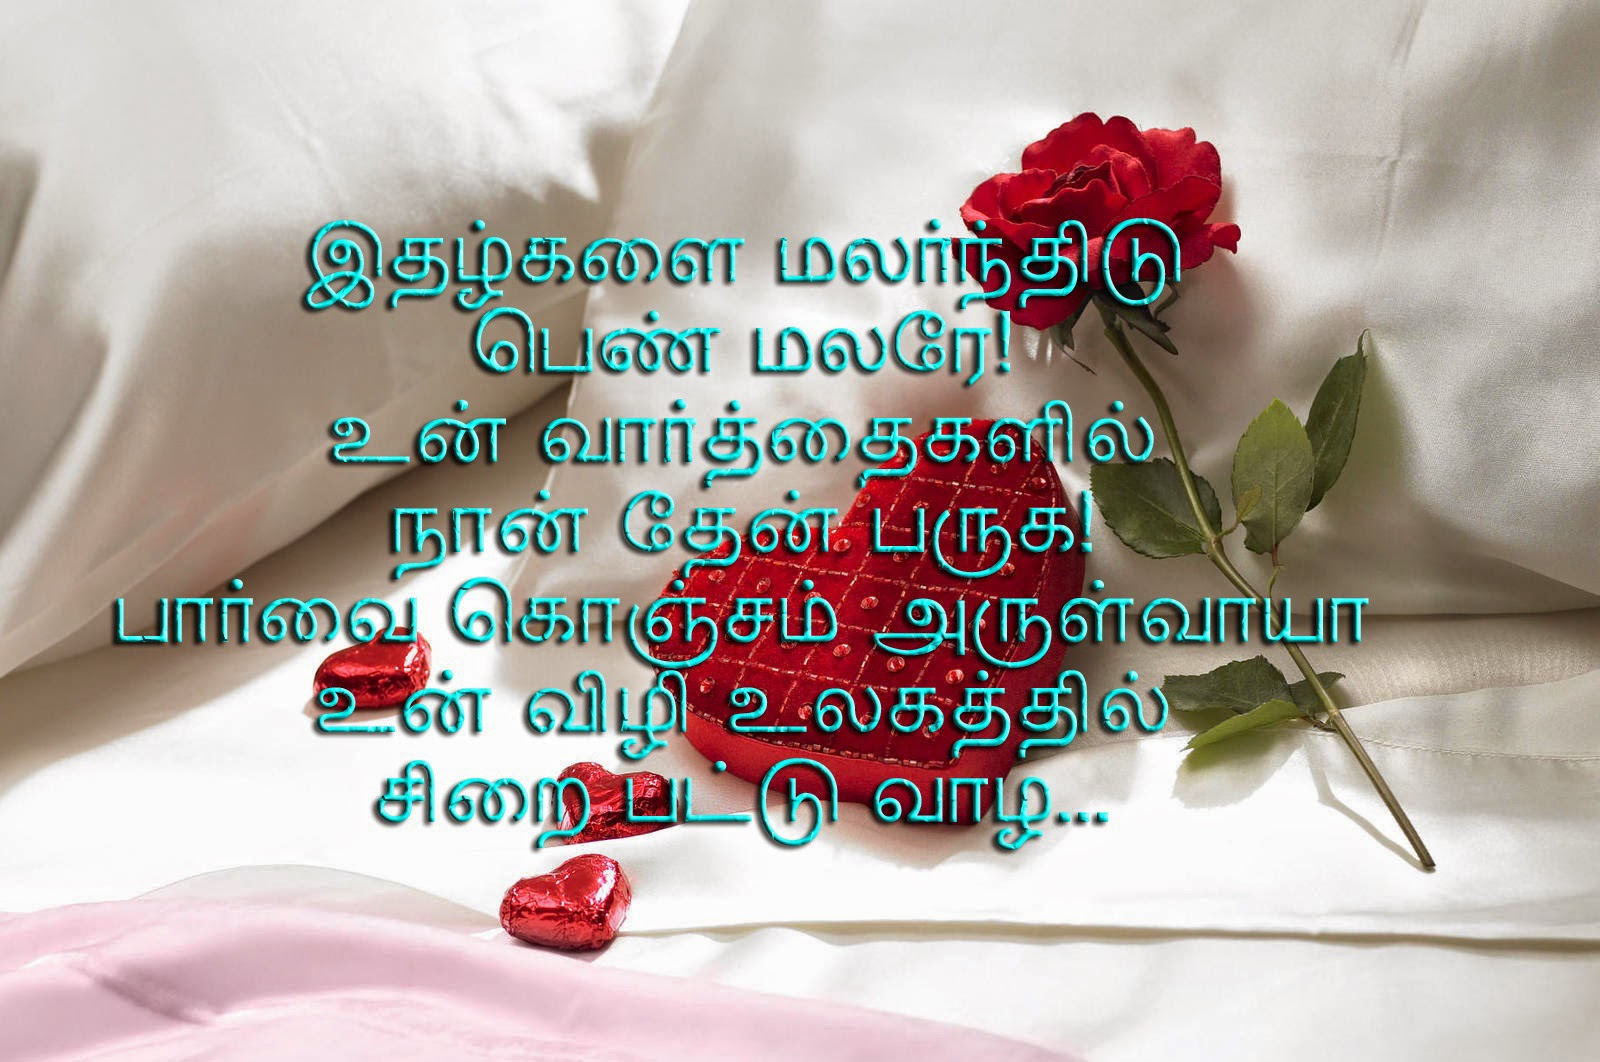 Cute Love Quotes For Her In Tamil : Cute Love Poems in Tamil With Picture, Wallpaper Quotes Wallpapers